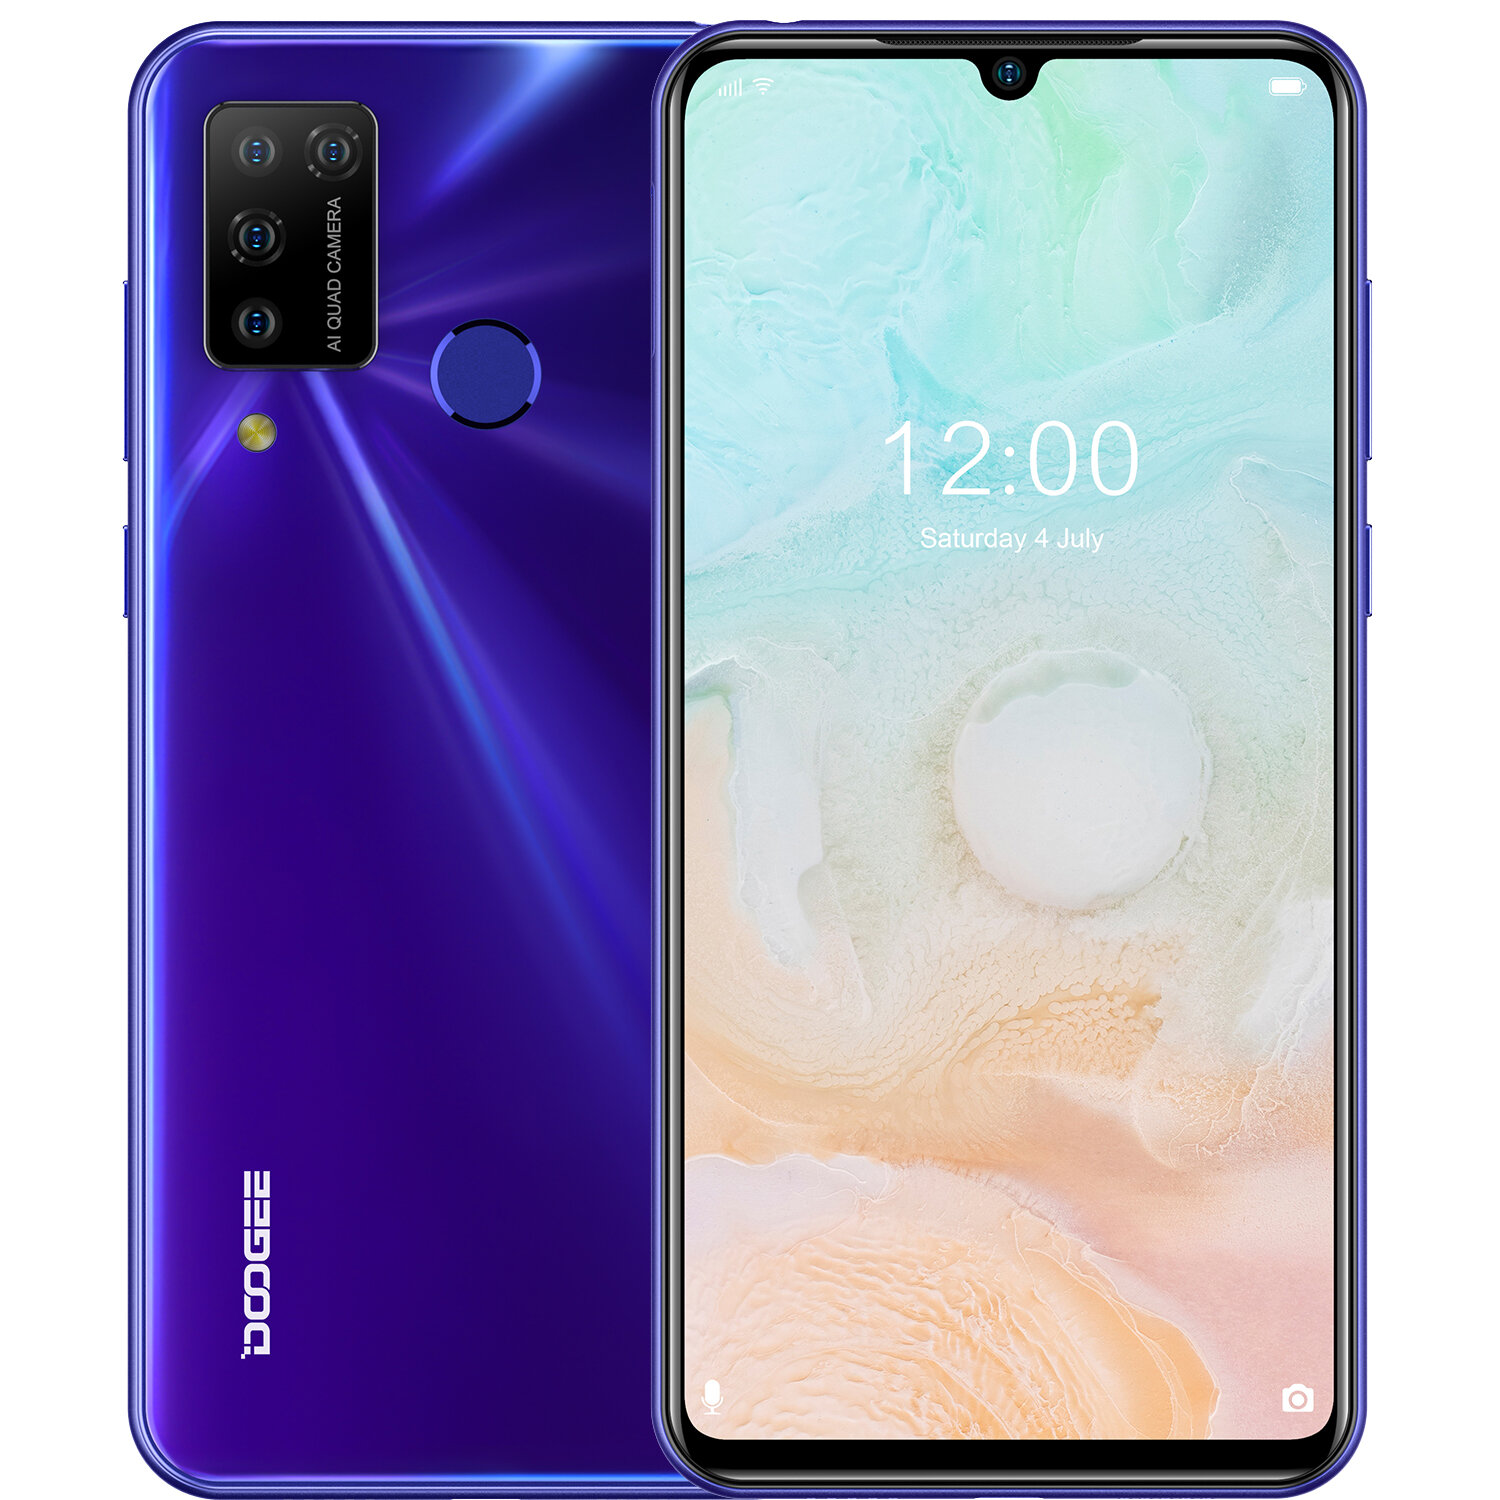 DOOGEE N20 Pro 6.3 inch FHD+ Waterdrop Display Android 10 4400mAh 16MP Quad Rear Camera 6GB 128GB Helio P60 Octa Core 4G Smartphone - Purple